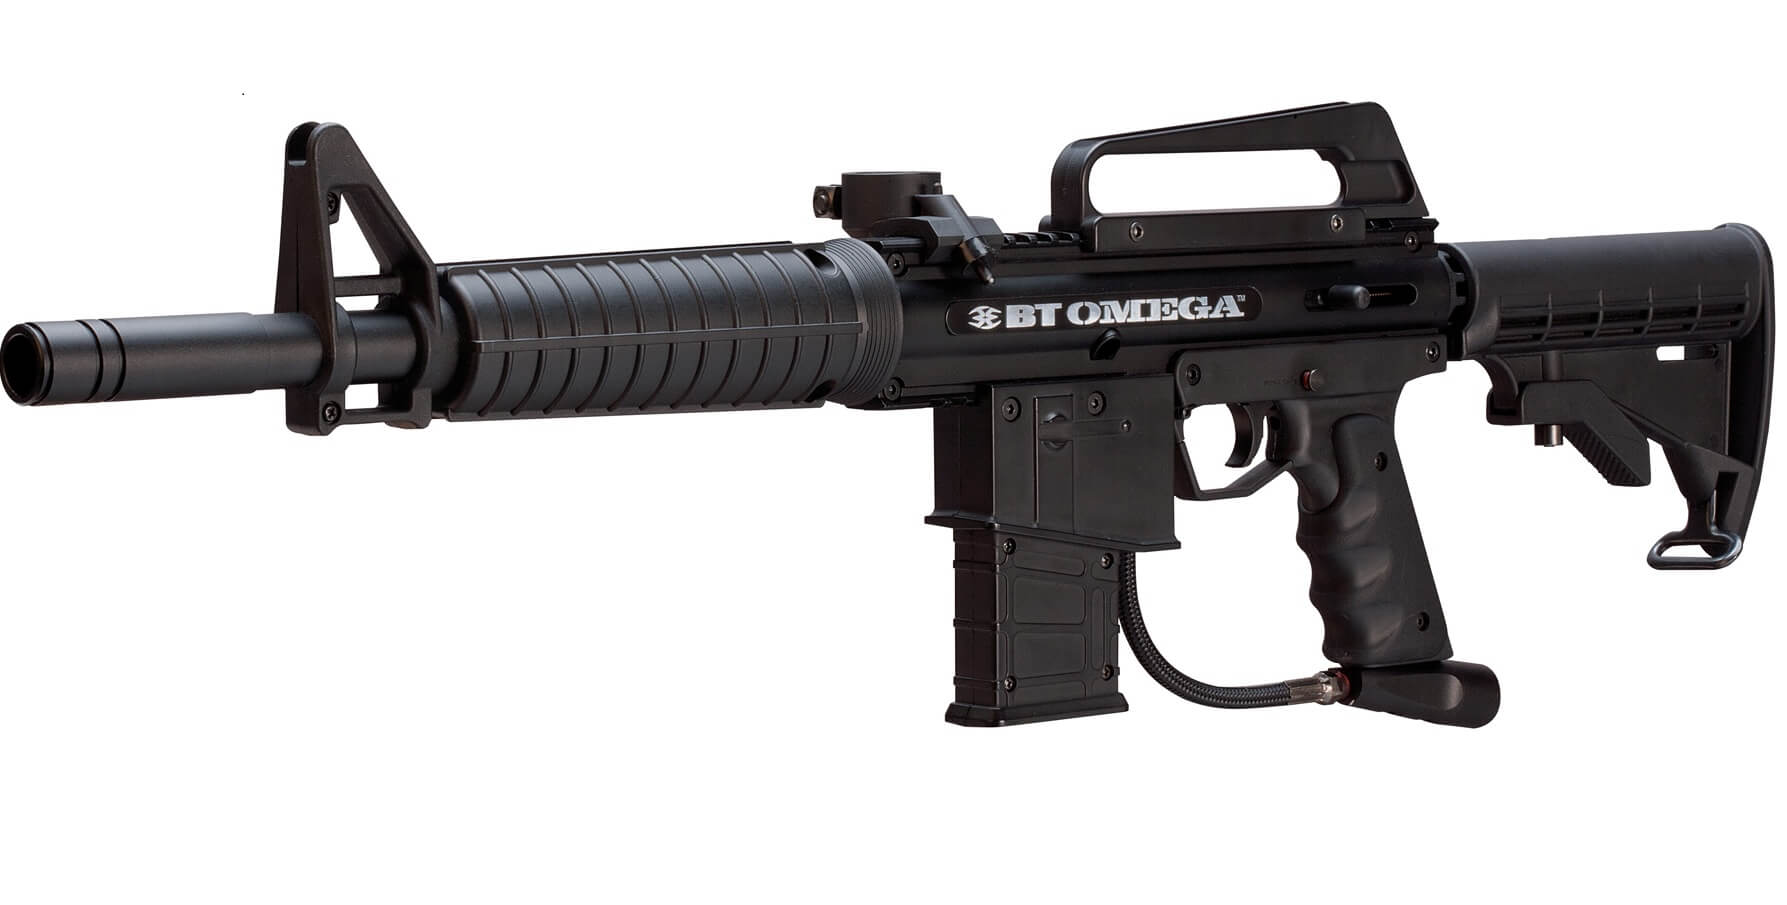 pb_bt_omegablk_17041_empire_bt_omega_paintball_gun_black_1